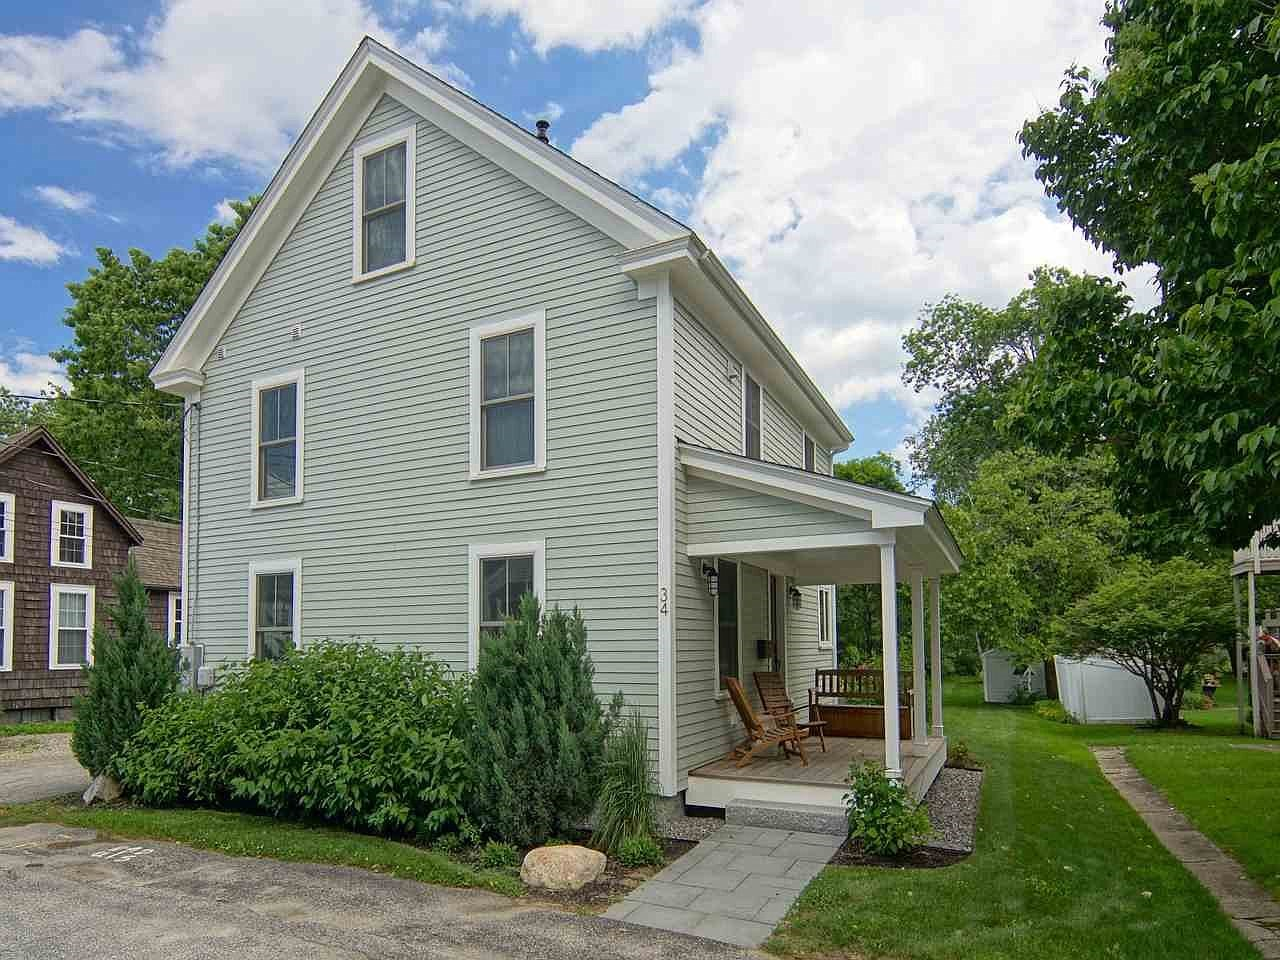 Photo of 34 River Street Exeter NH 03833